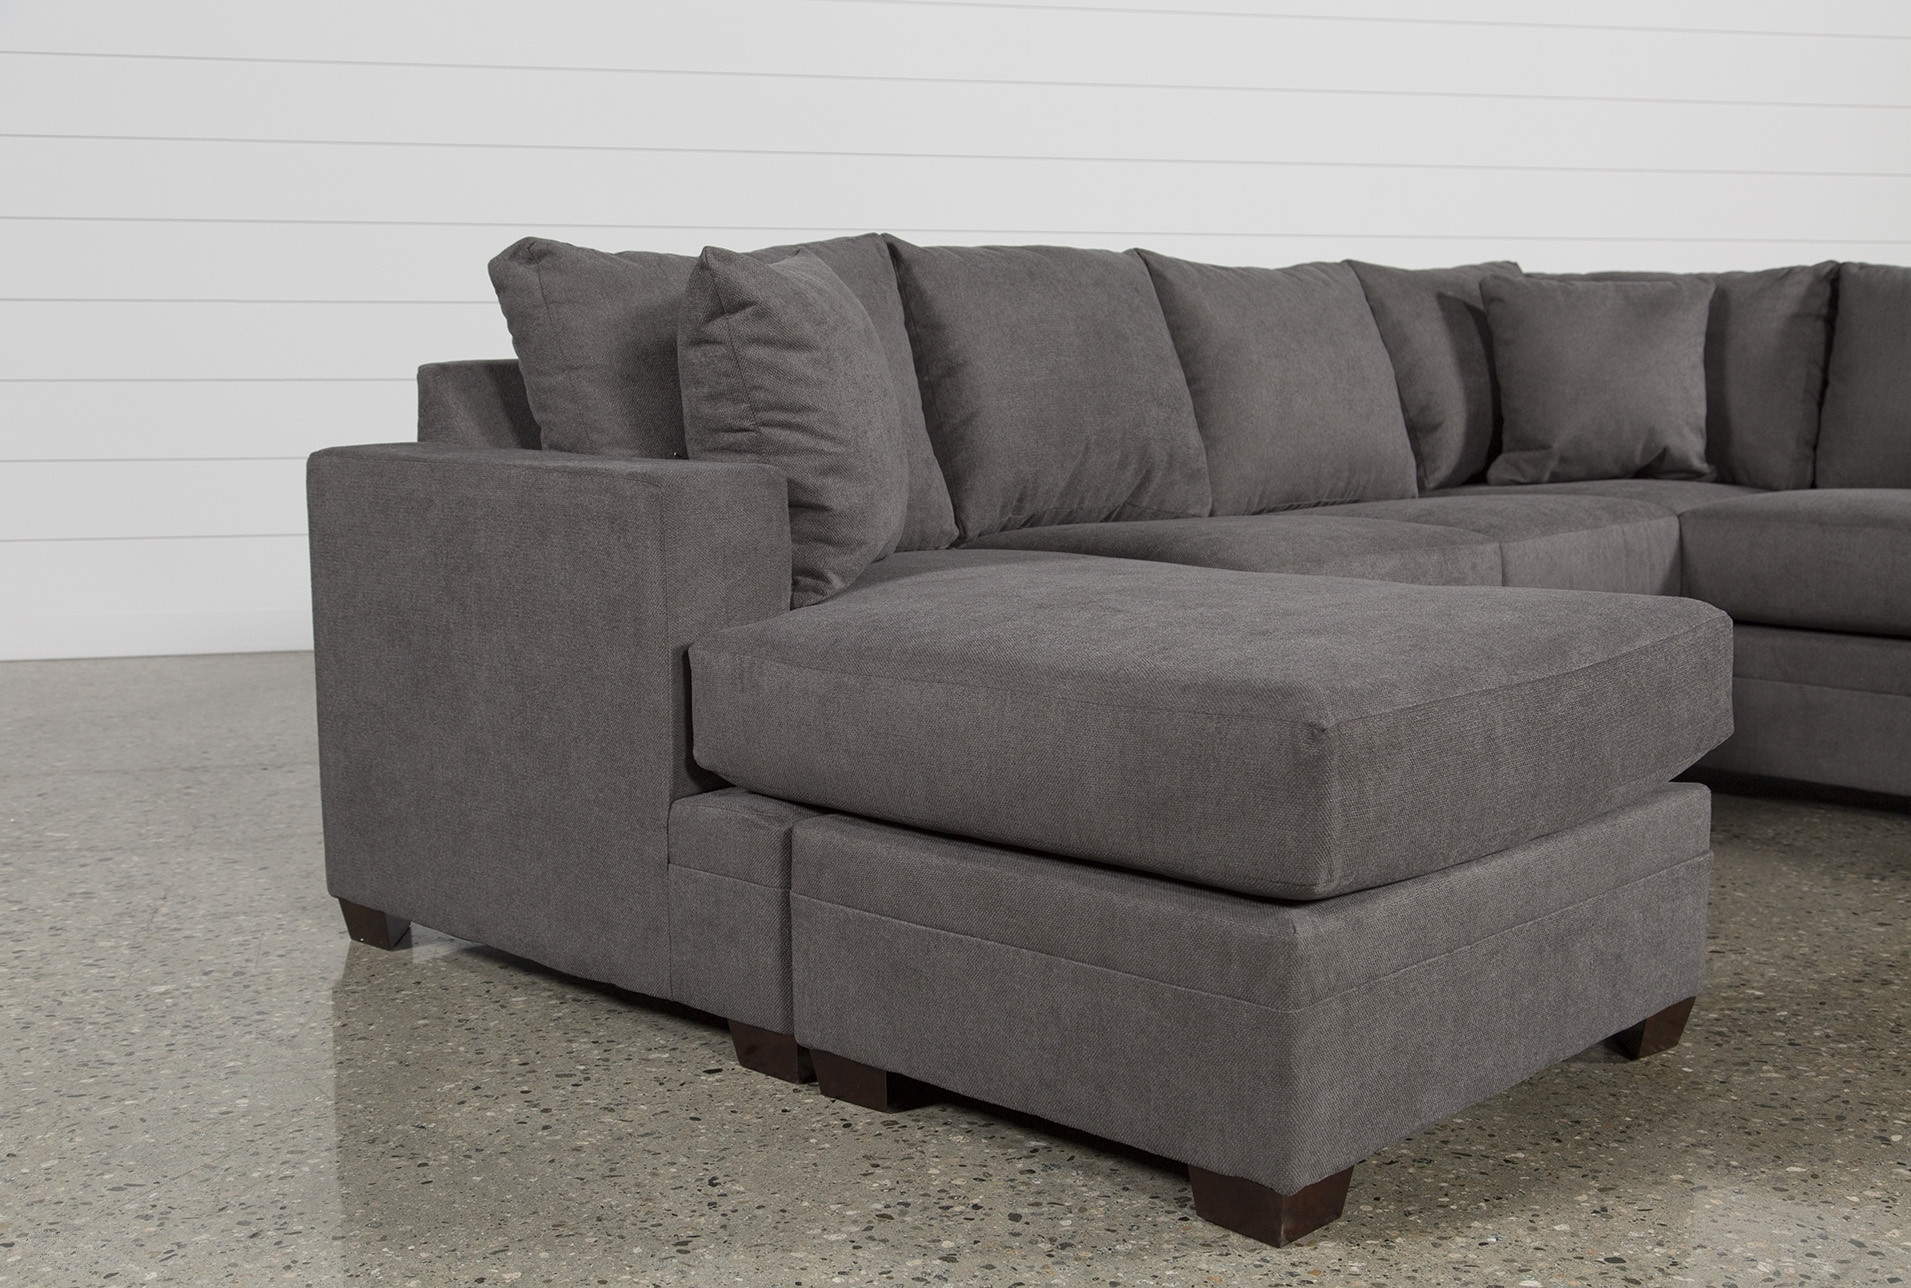 Kerri 2 Piece Sectional W/laf Chaise | Products | Pinterest In Kerri 2 Piece Sectionals With Raf Chaise (Photo 6 of 30)